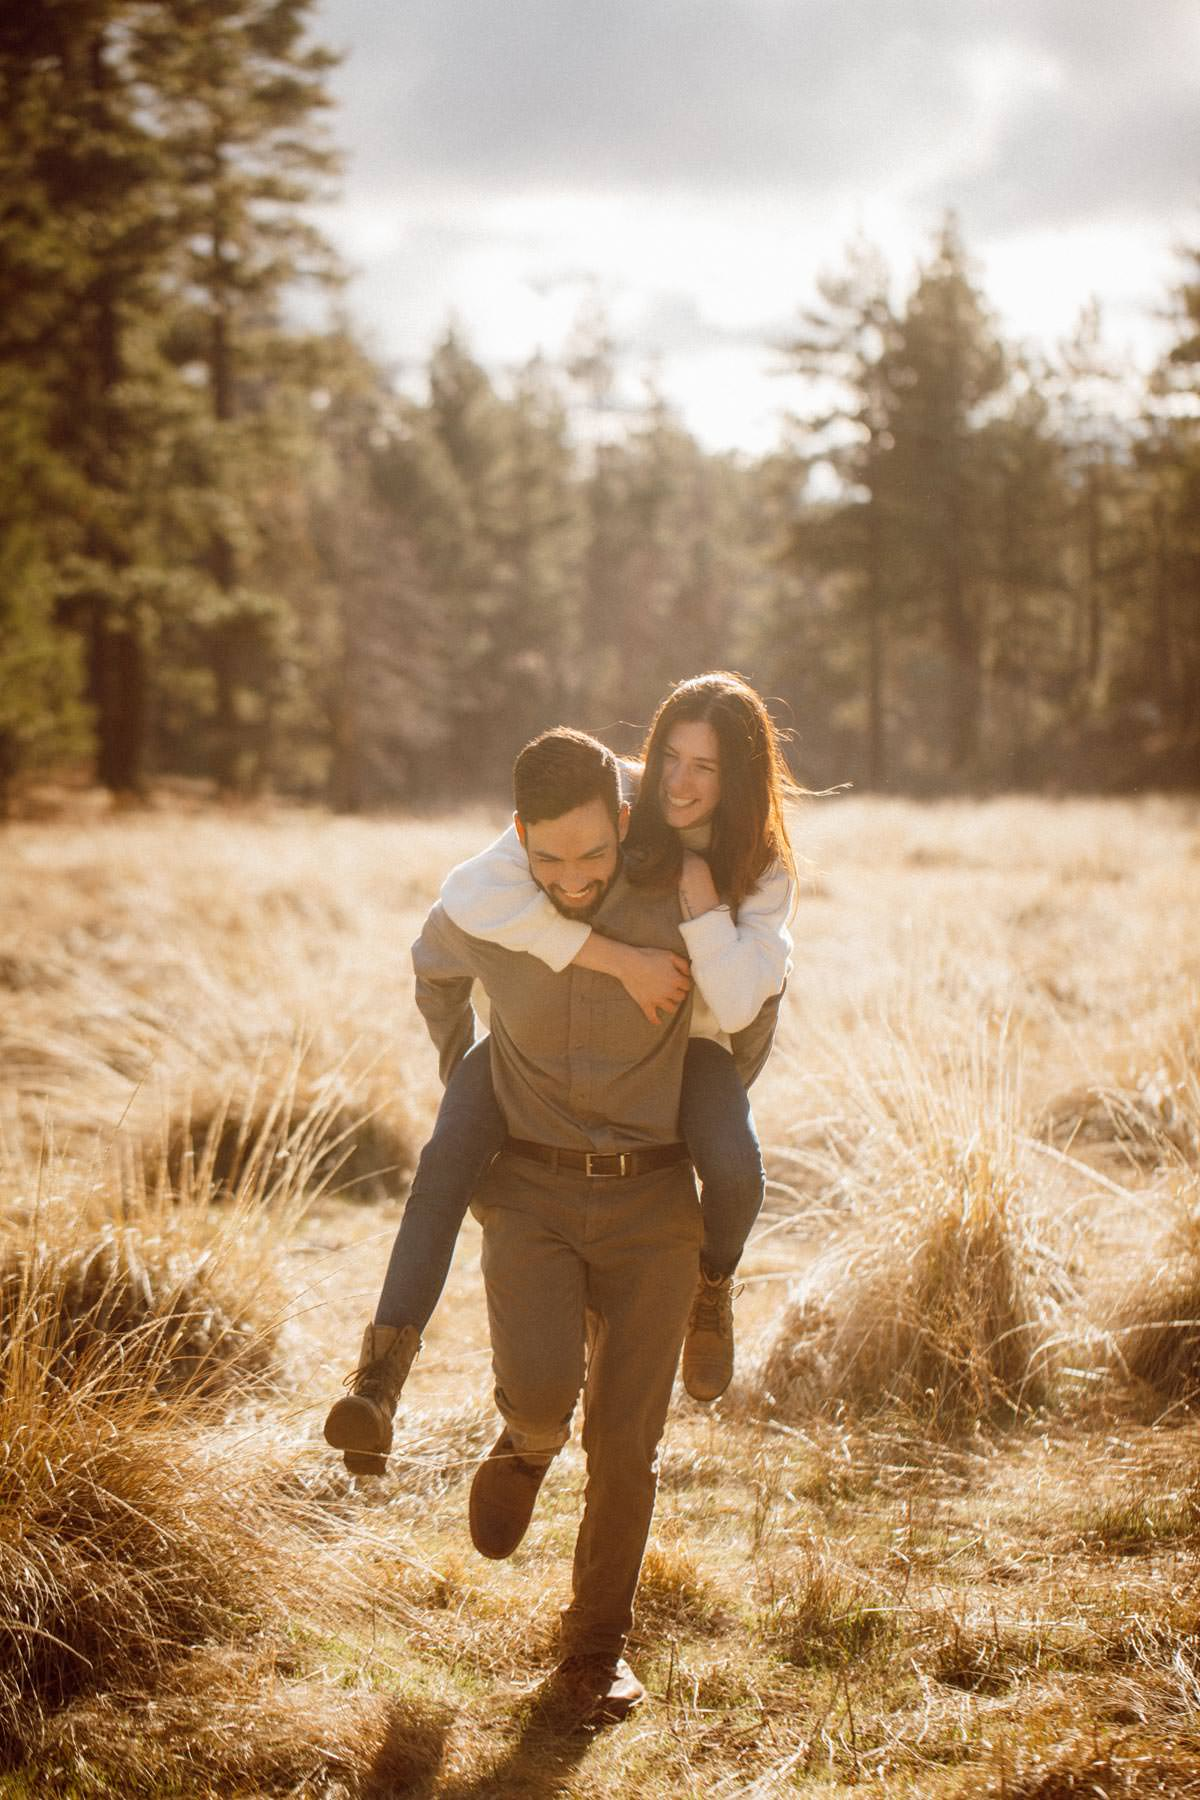 mount laguna engagement shoot having fun like kids